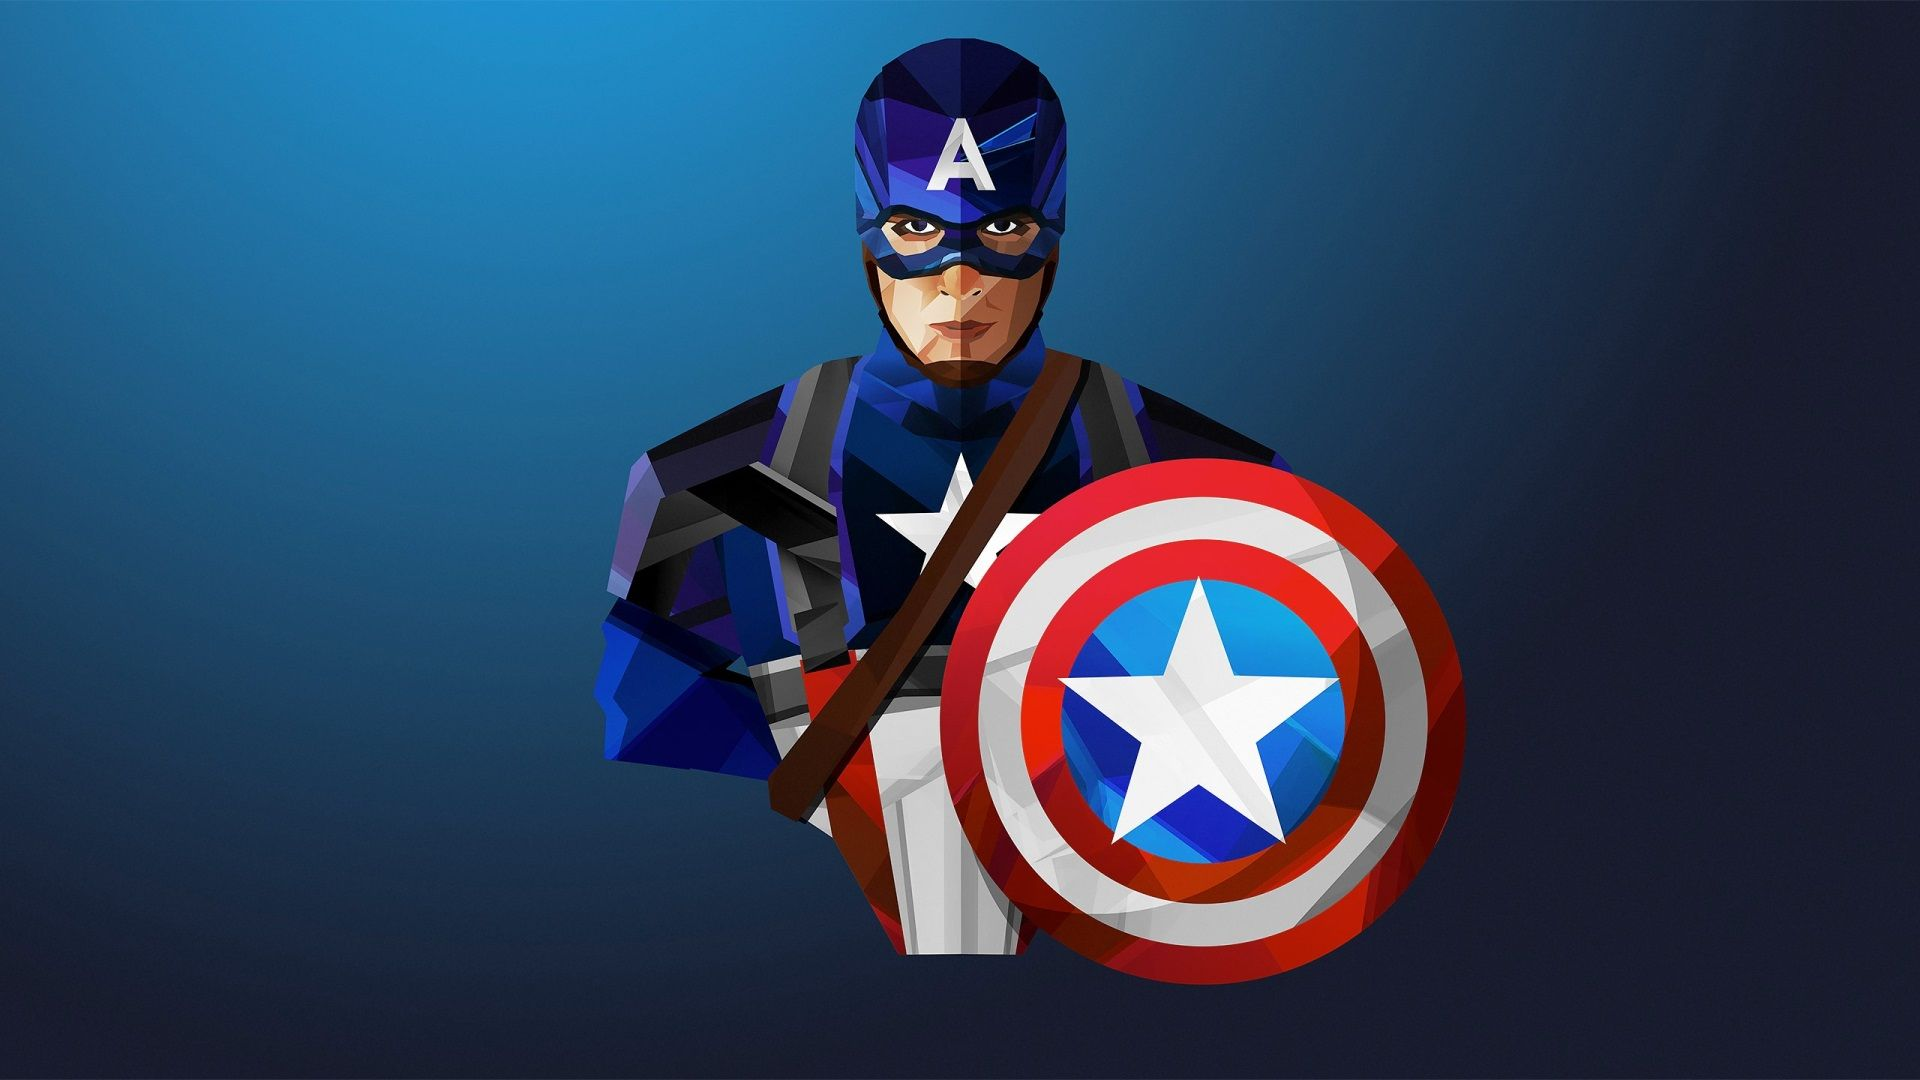 1920x1080 Captain America Wallpapers 1080p High Quality Captain America Wallpaper Superhero Wallpaper Captain America